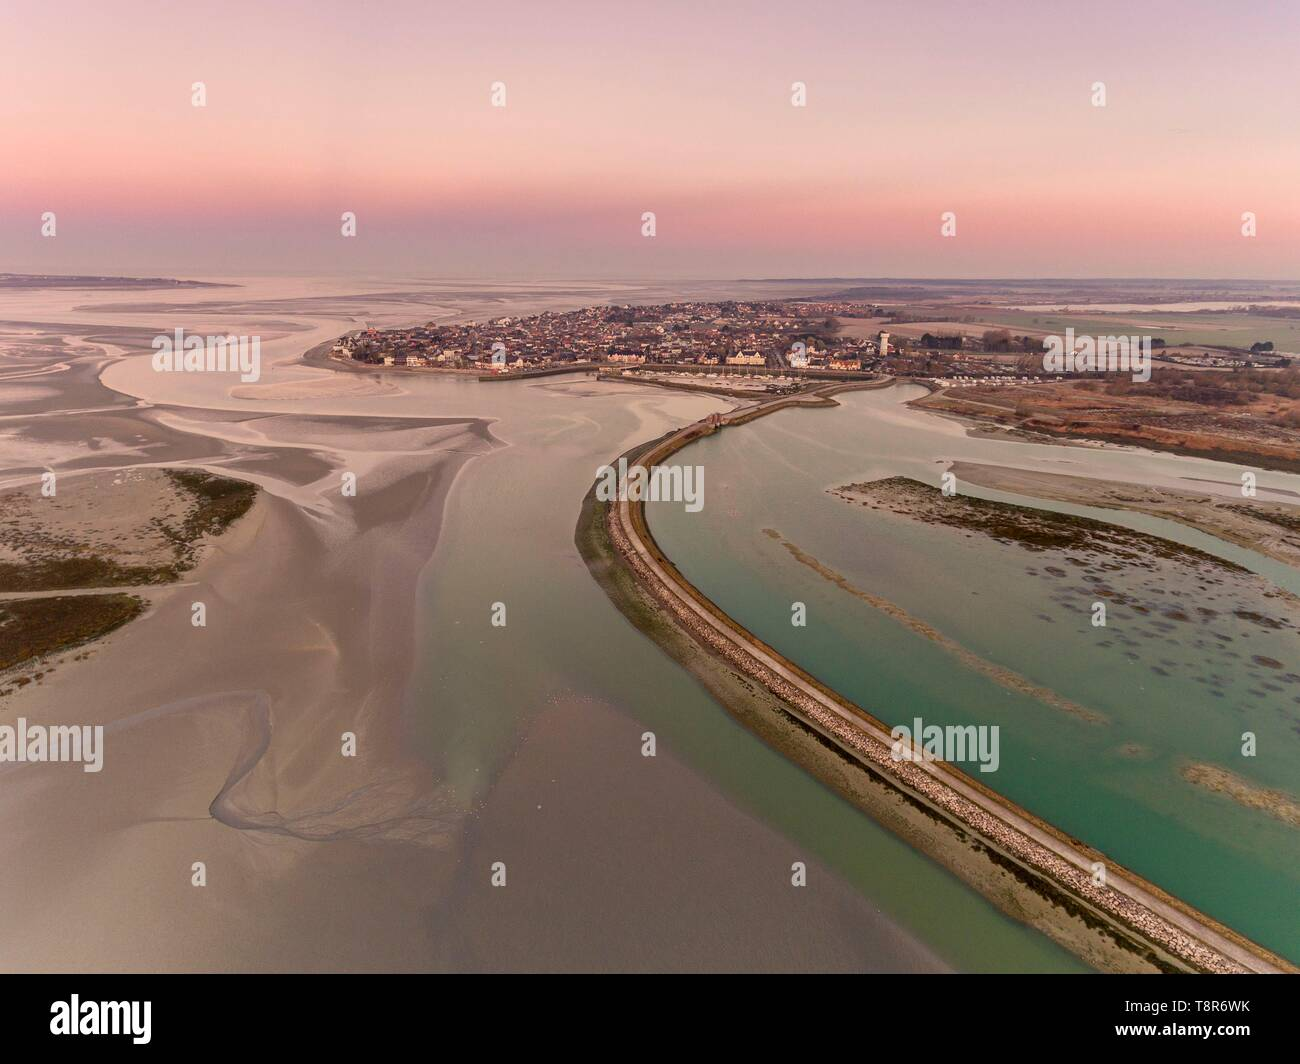 France, Somme, Baie de Somme, Le Crotoy, aerial view of Le Crotoy and the flush pond used to evacuate sediments and fight the silting of the bay Stock Photo